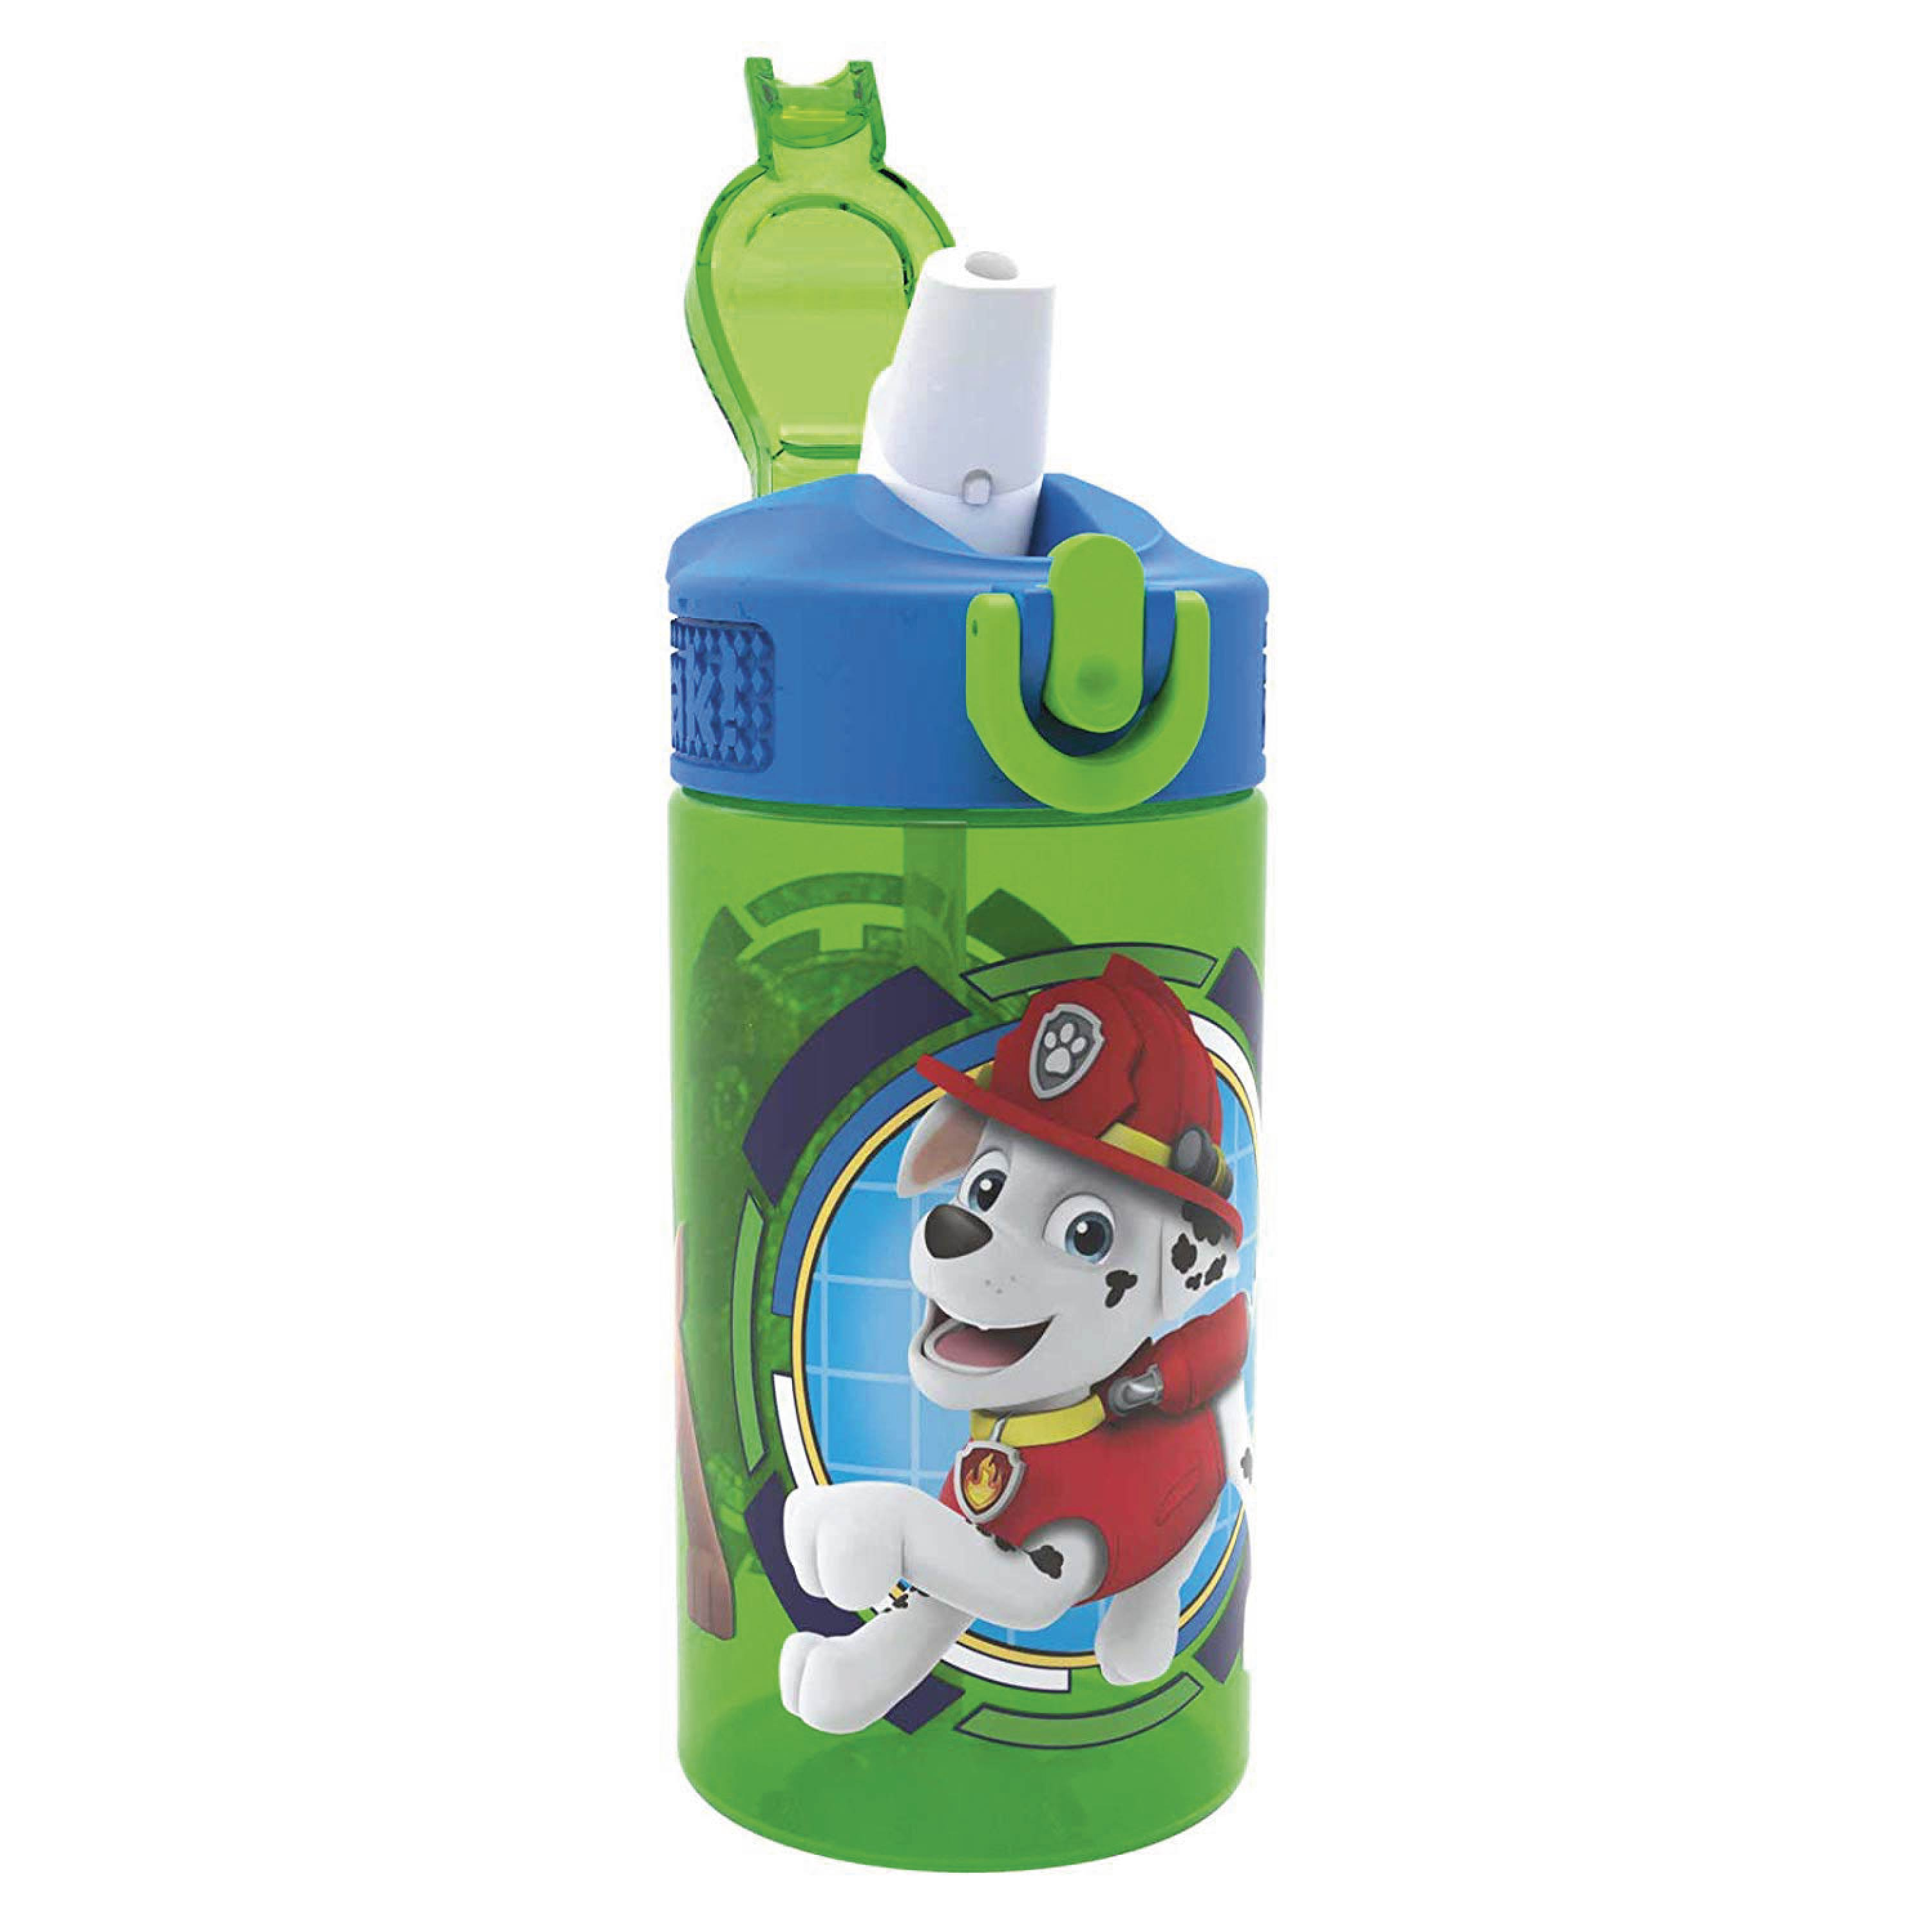 Paw Patrol 16 ounce Water Bottle, Rocky, Rubble & Chase slideshow image 6